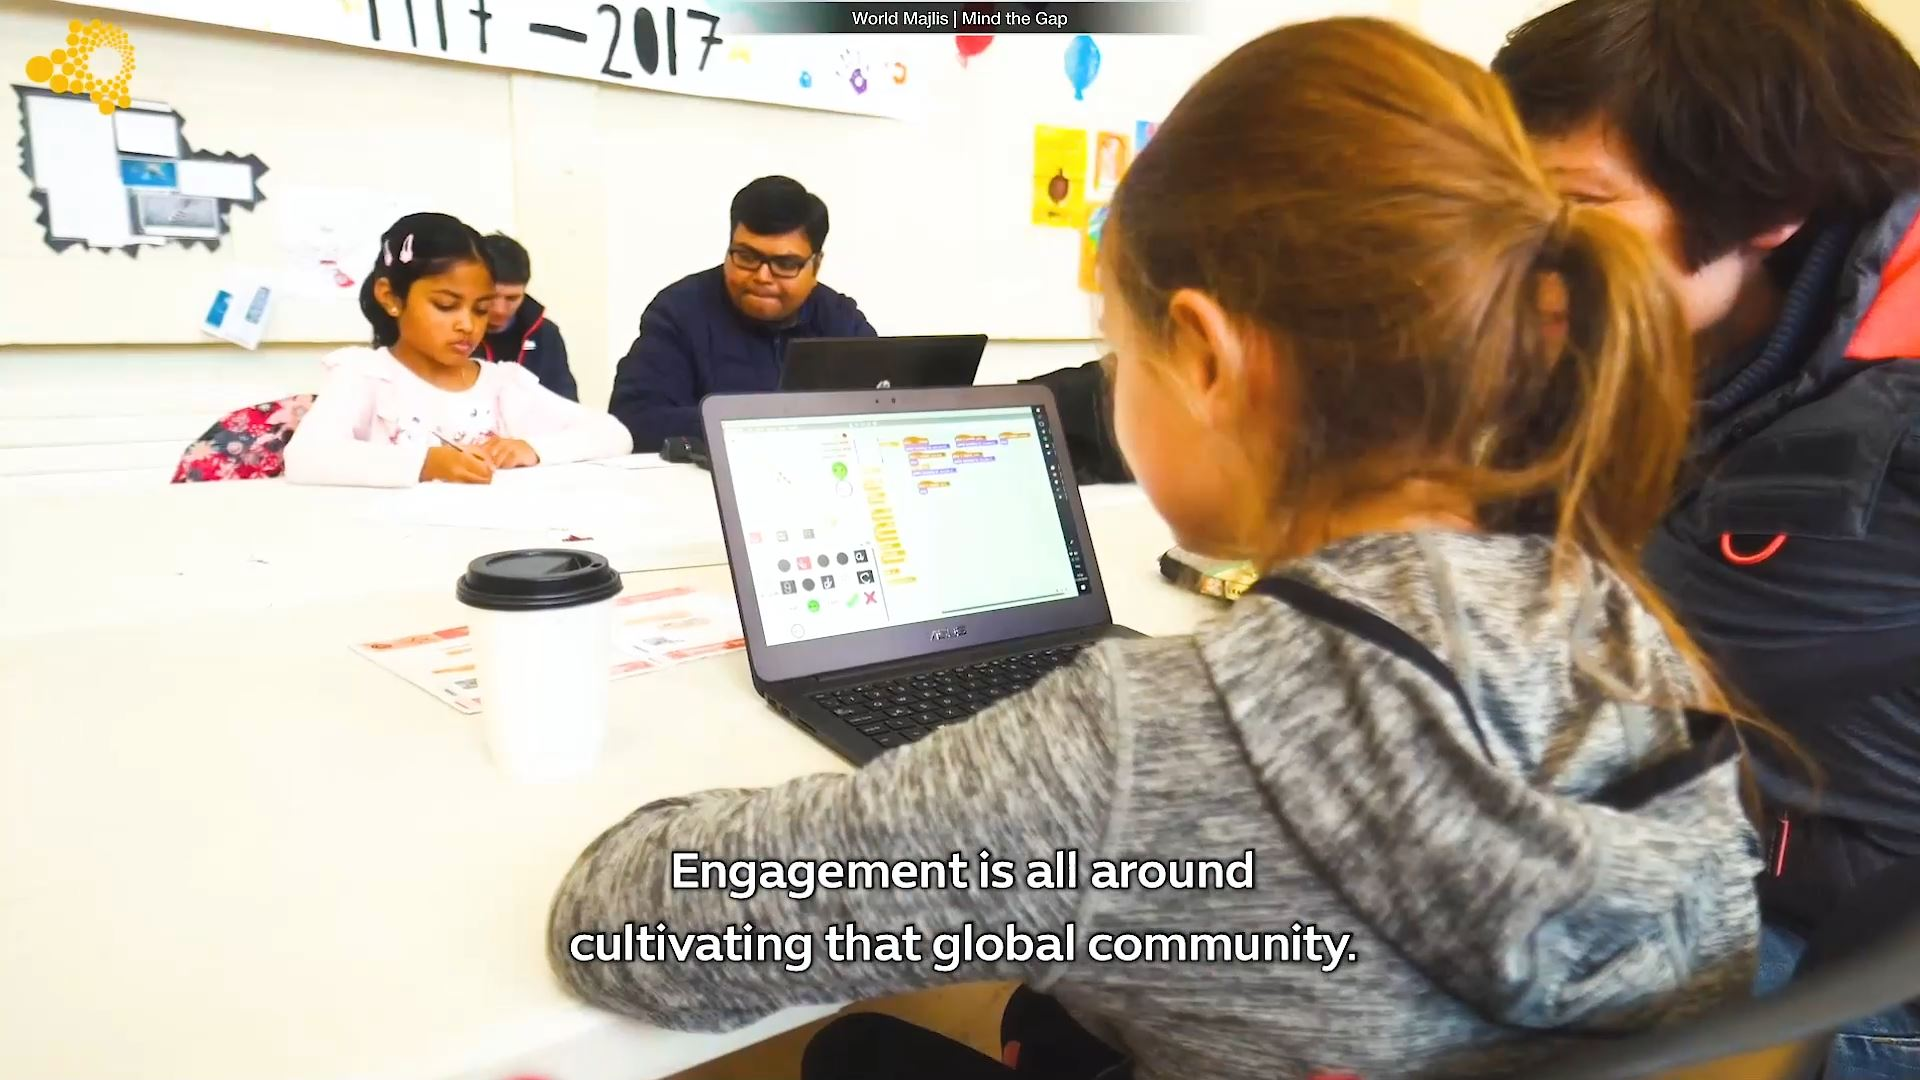 expo 2020 knowledge and learning week virtual event video presentation